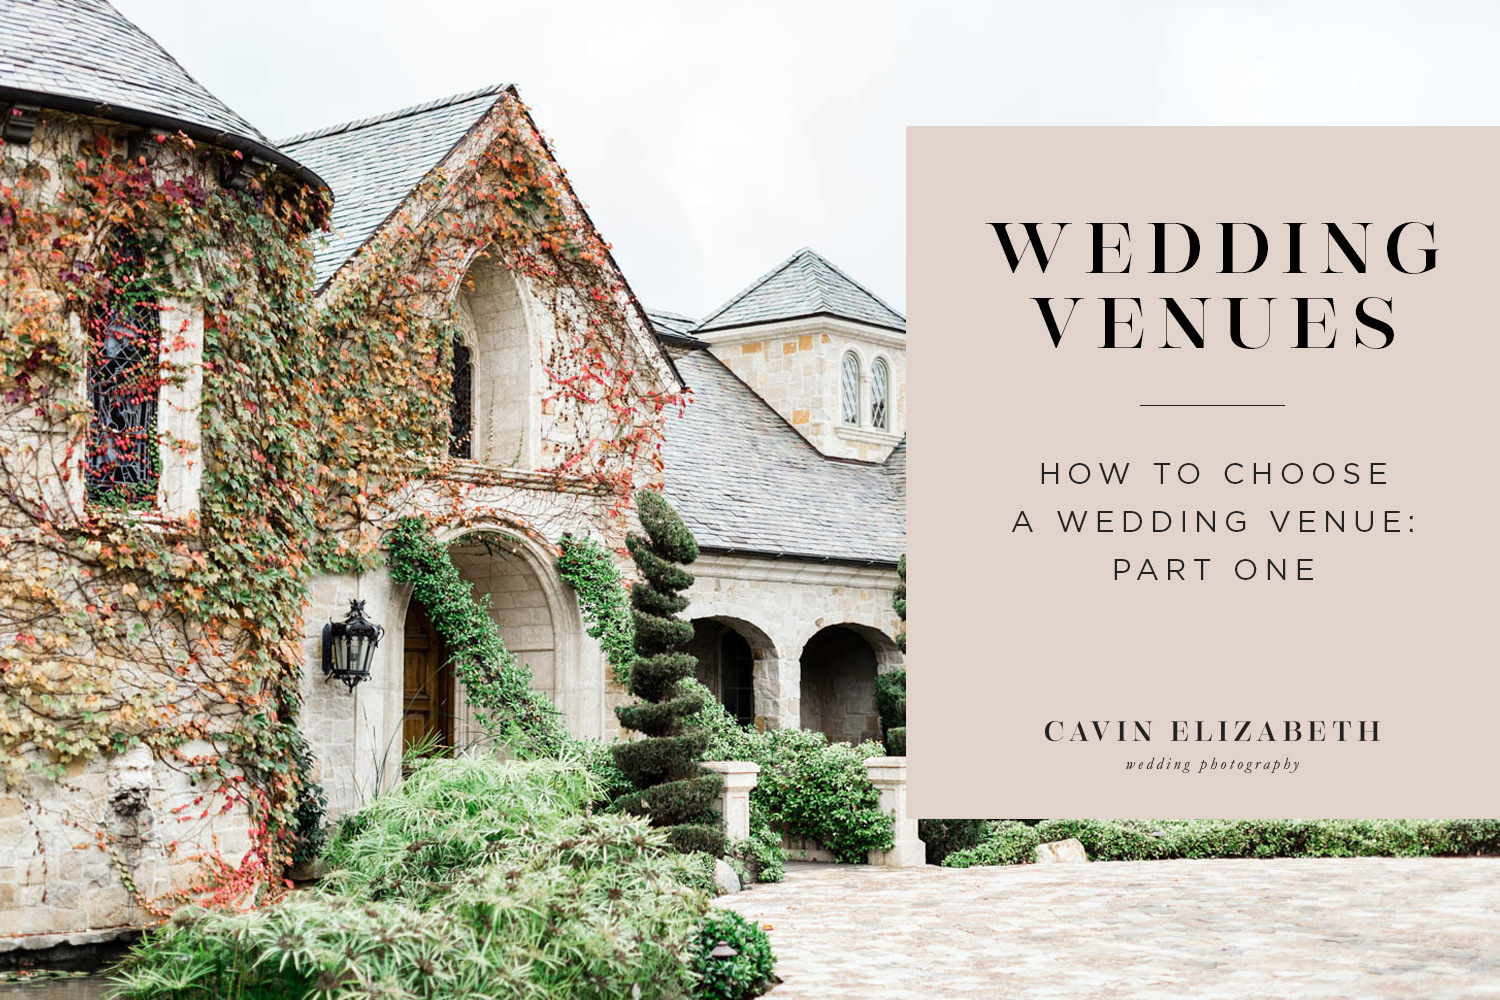 How to Choose a Wedding Venue - Part 1, Tips for choosing your perfect dream wedding venue